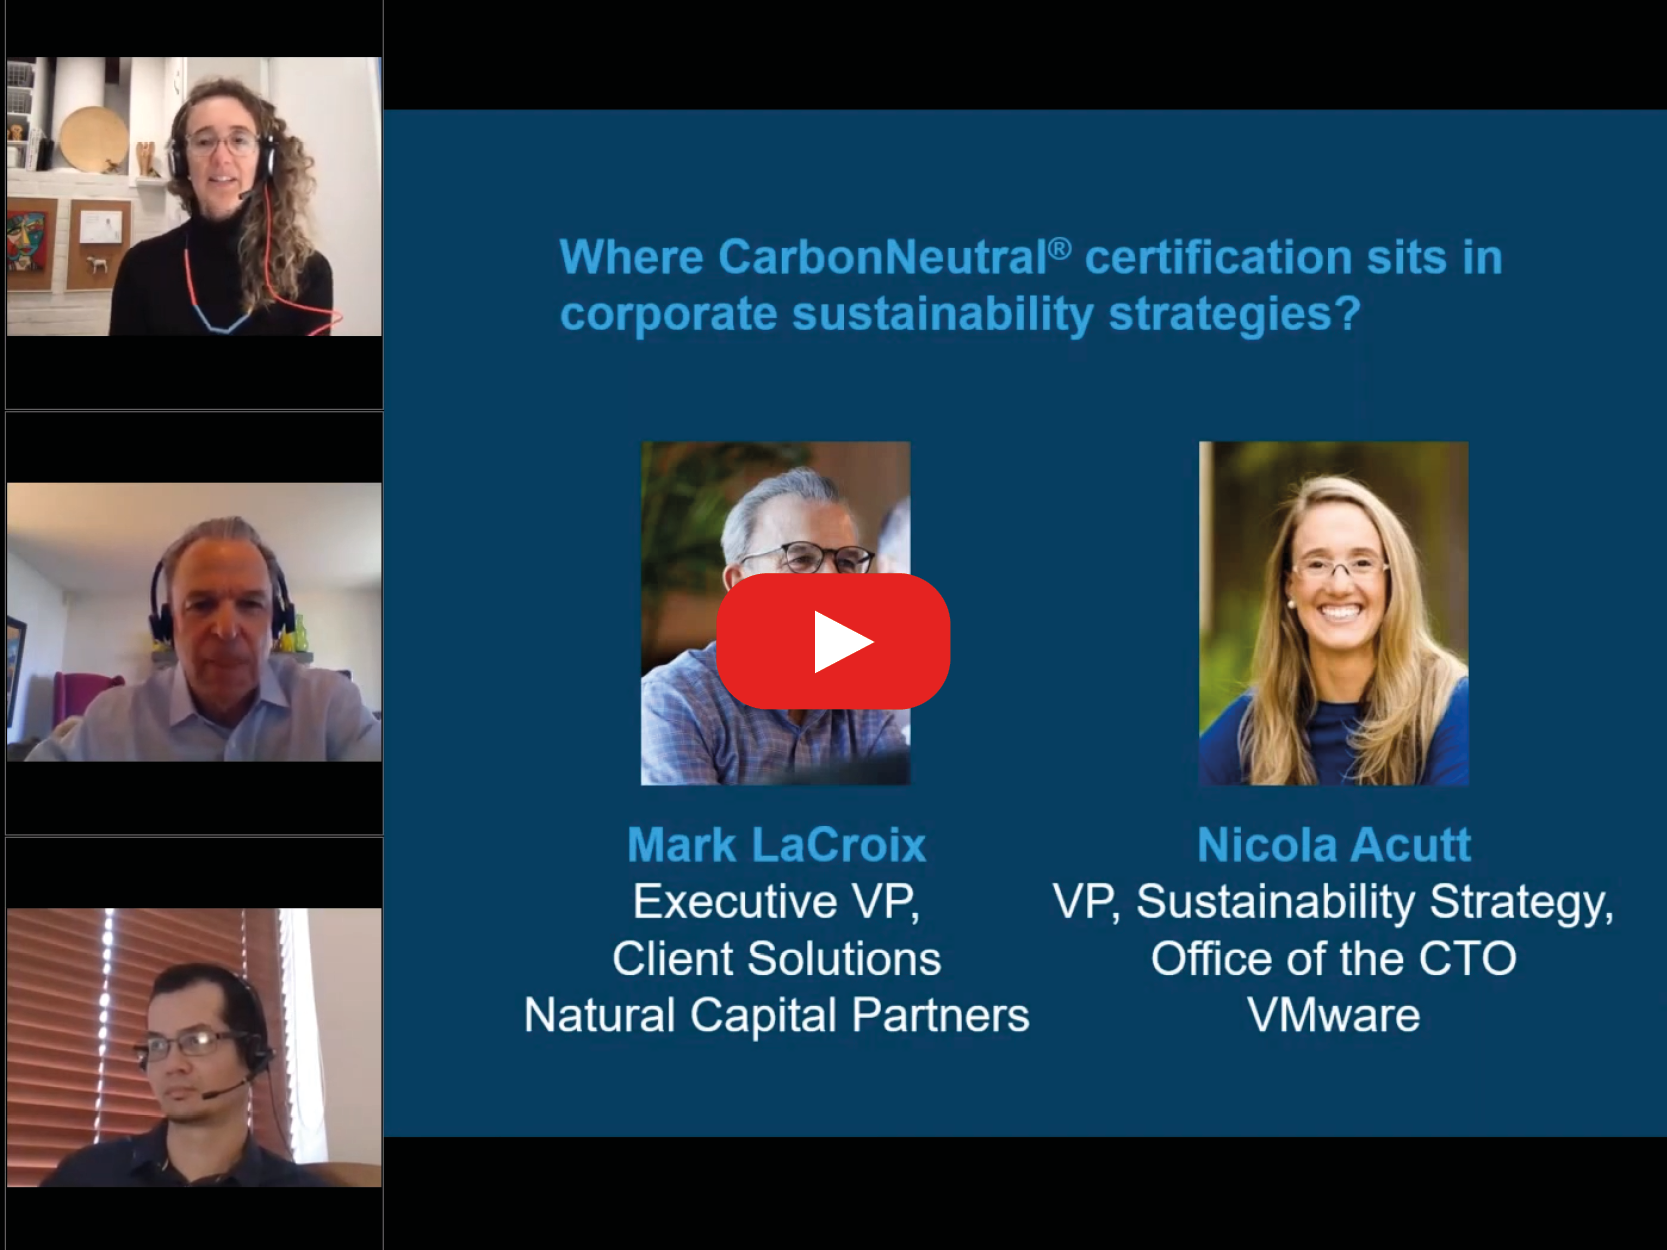 Where CarbonNeutral® certification sits in corporate sustainability strategies